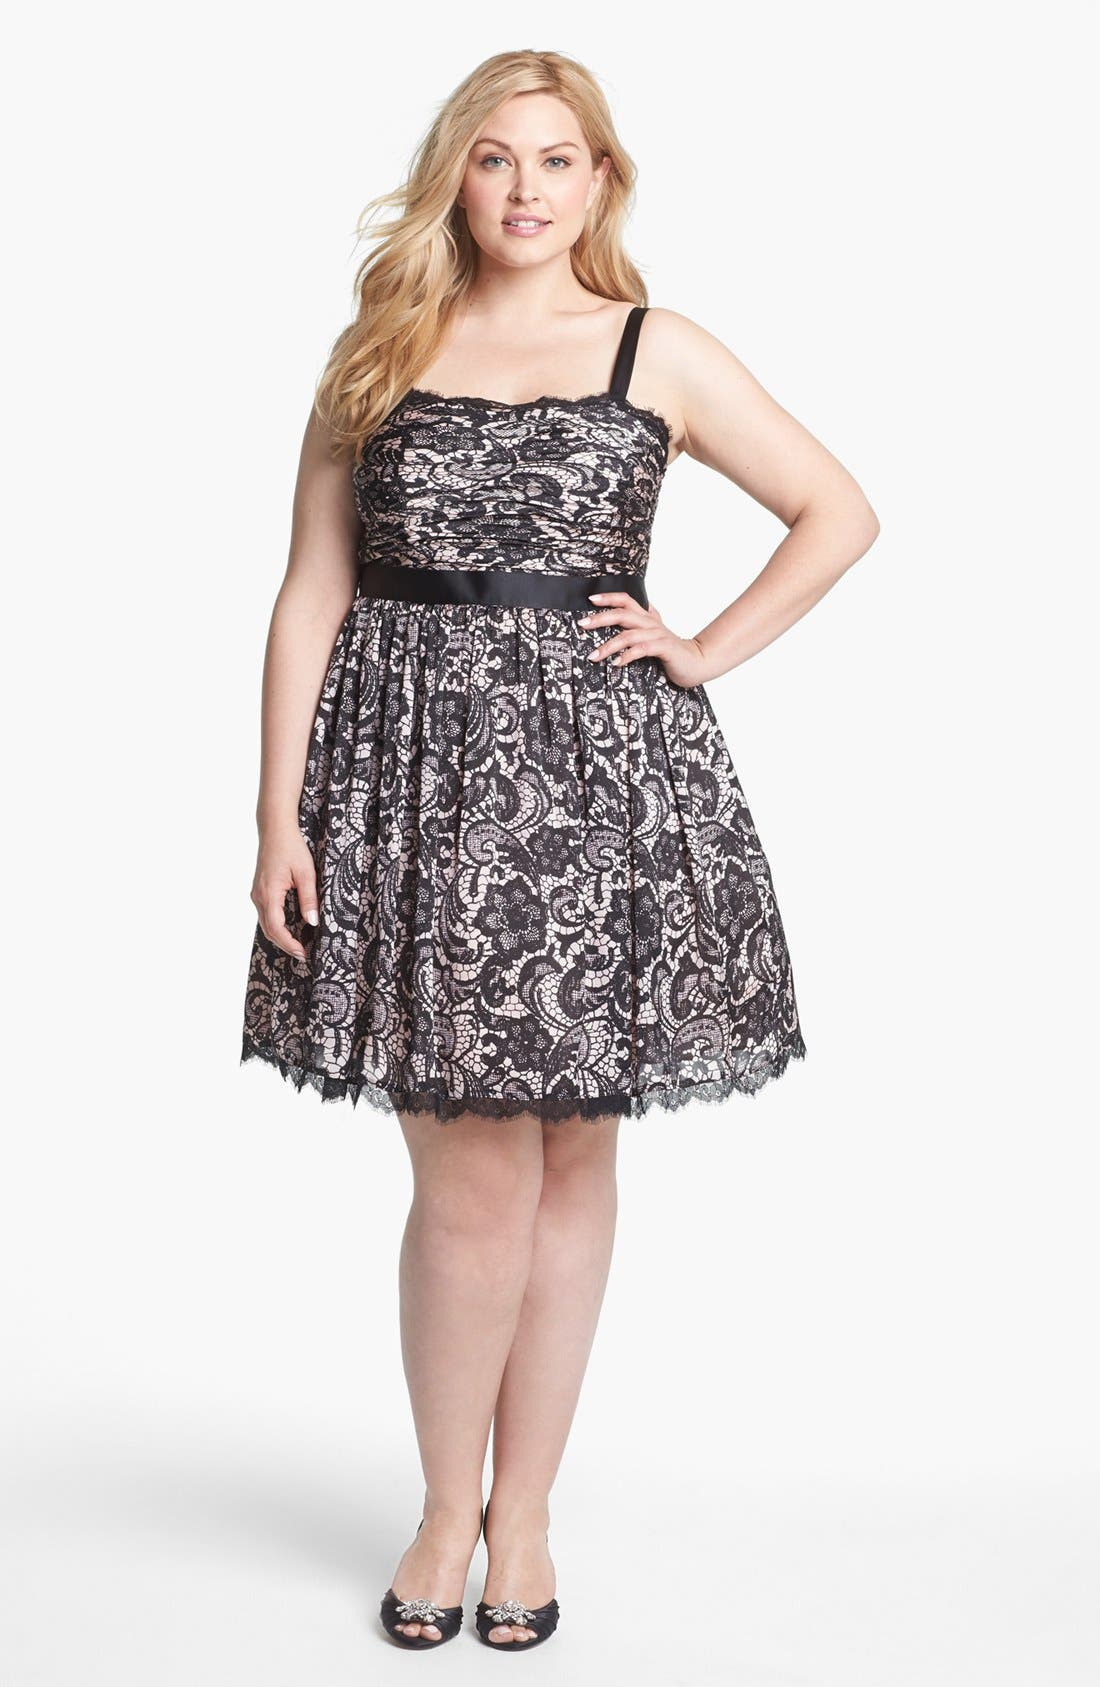 Main Image - Adrianna Papell Lace Print Tulle Fit & Flare Dress (Plus Size)